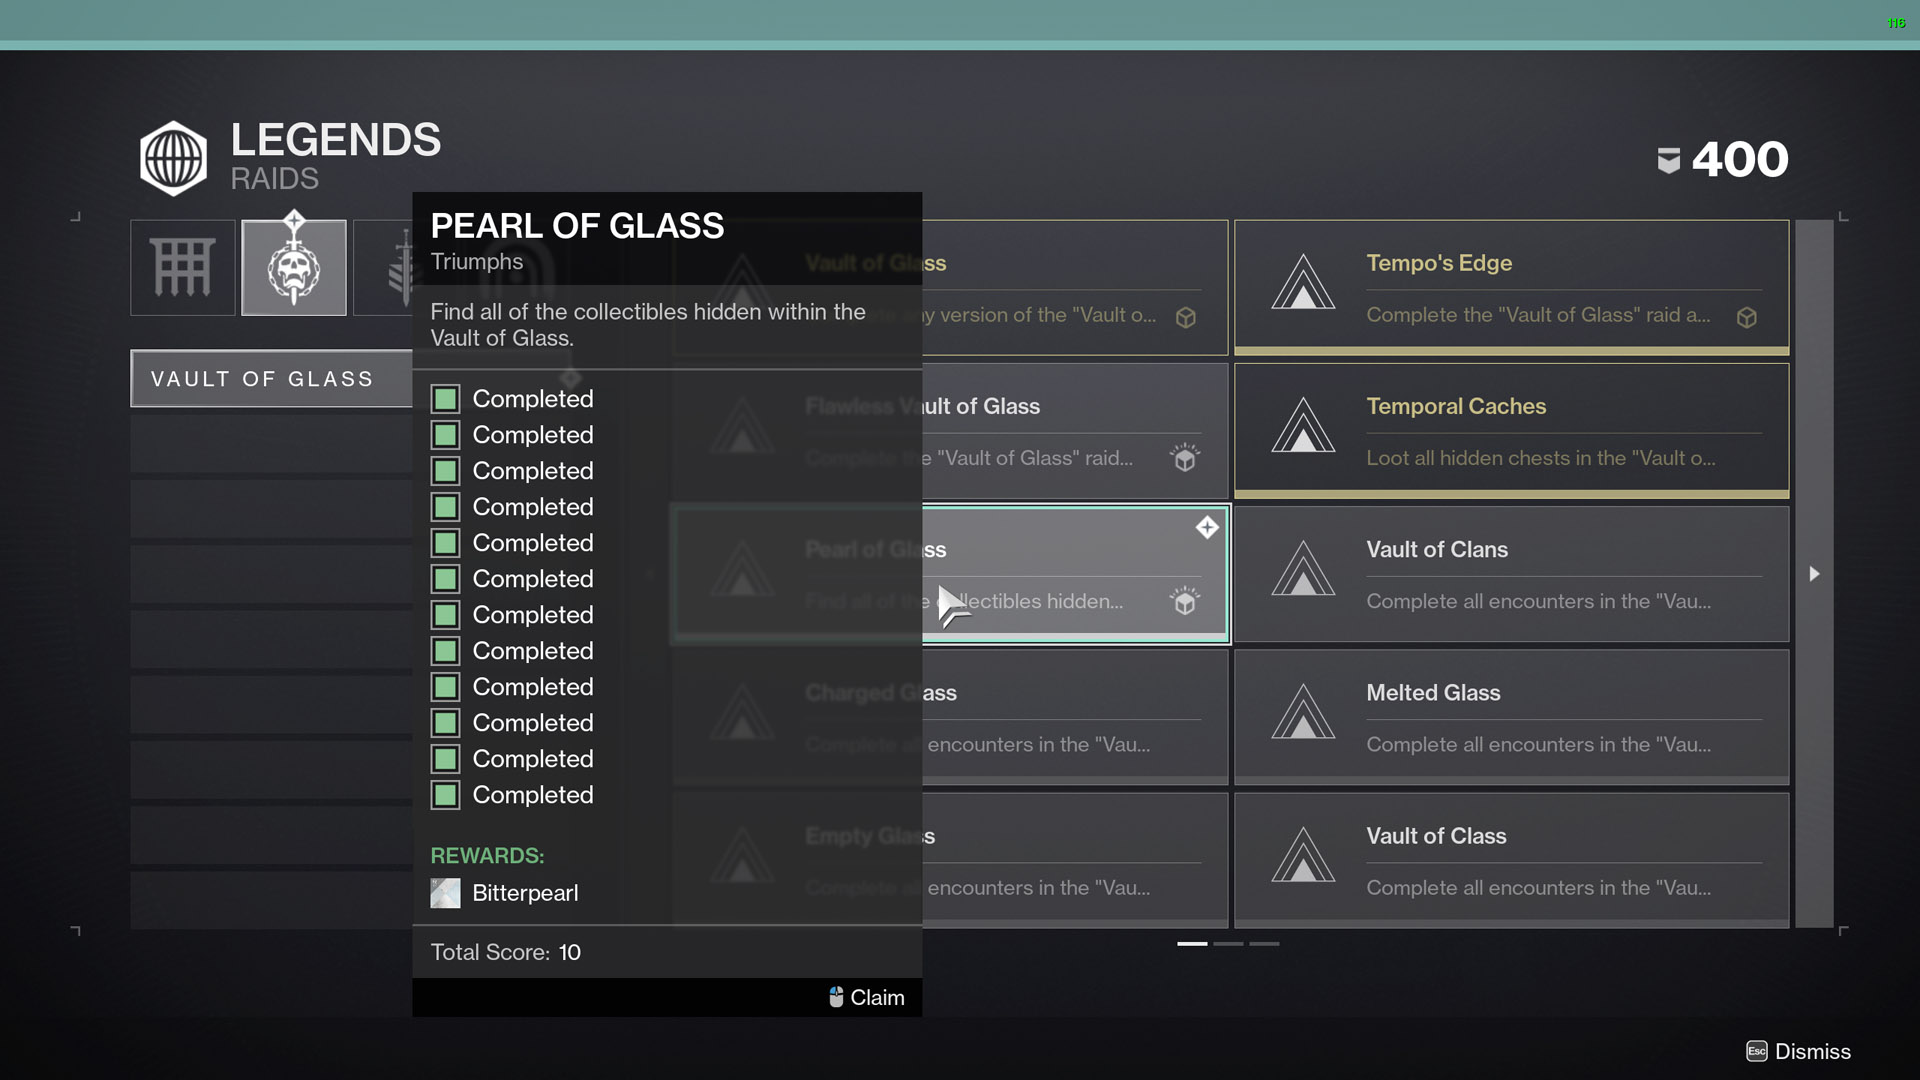 destiny 2 pearl of glass vault of glass collectibles